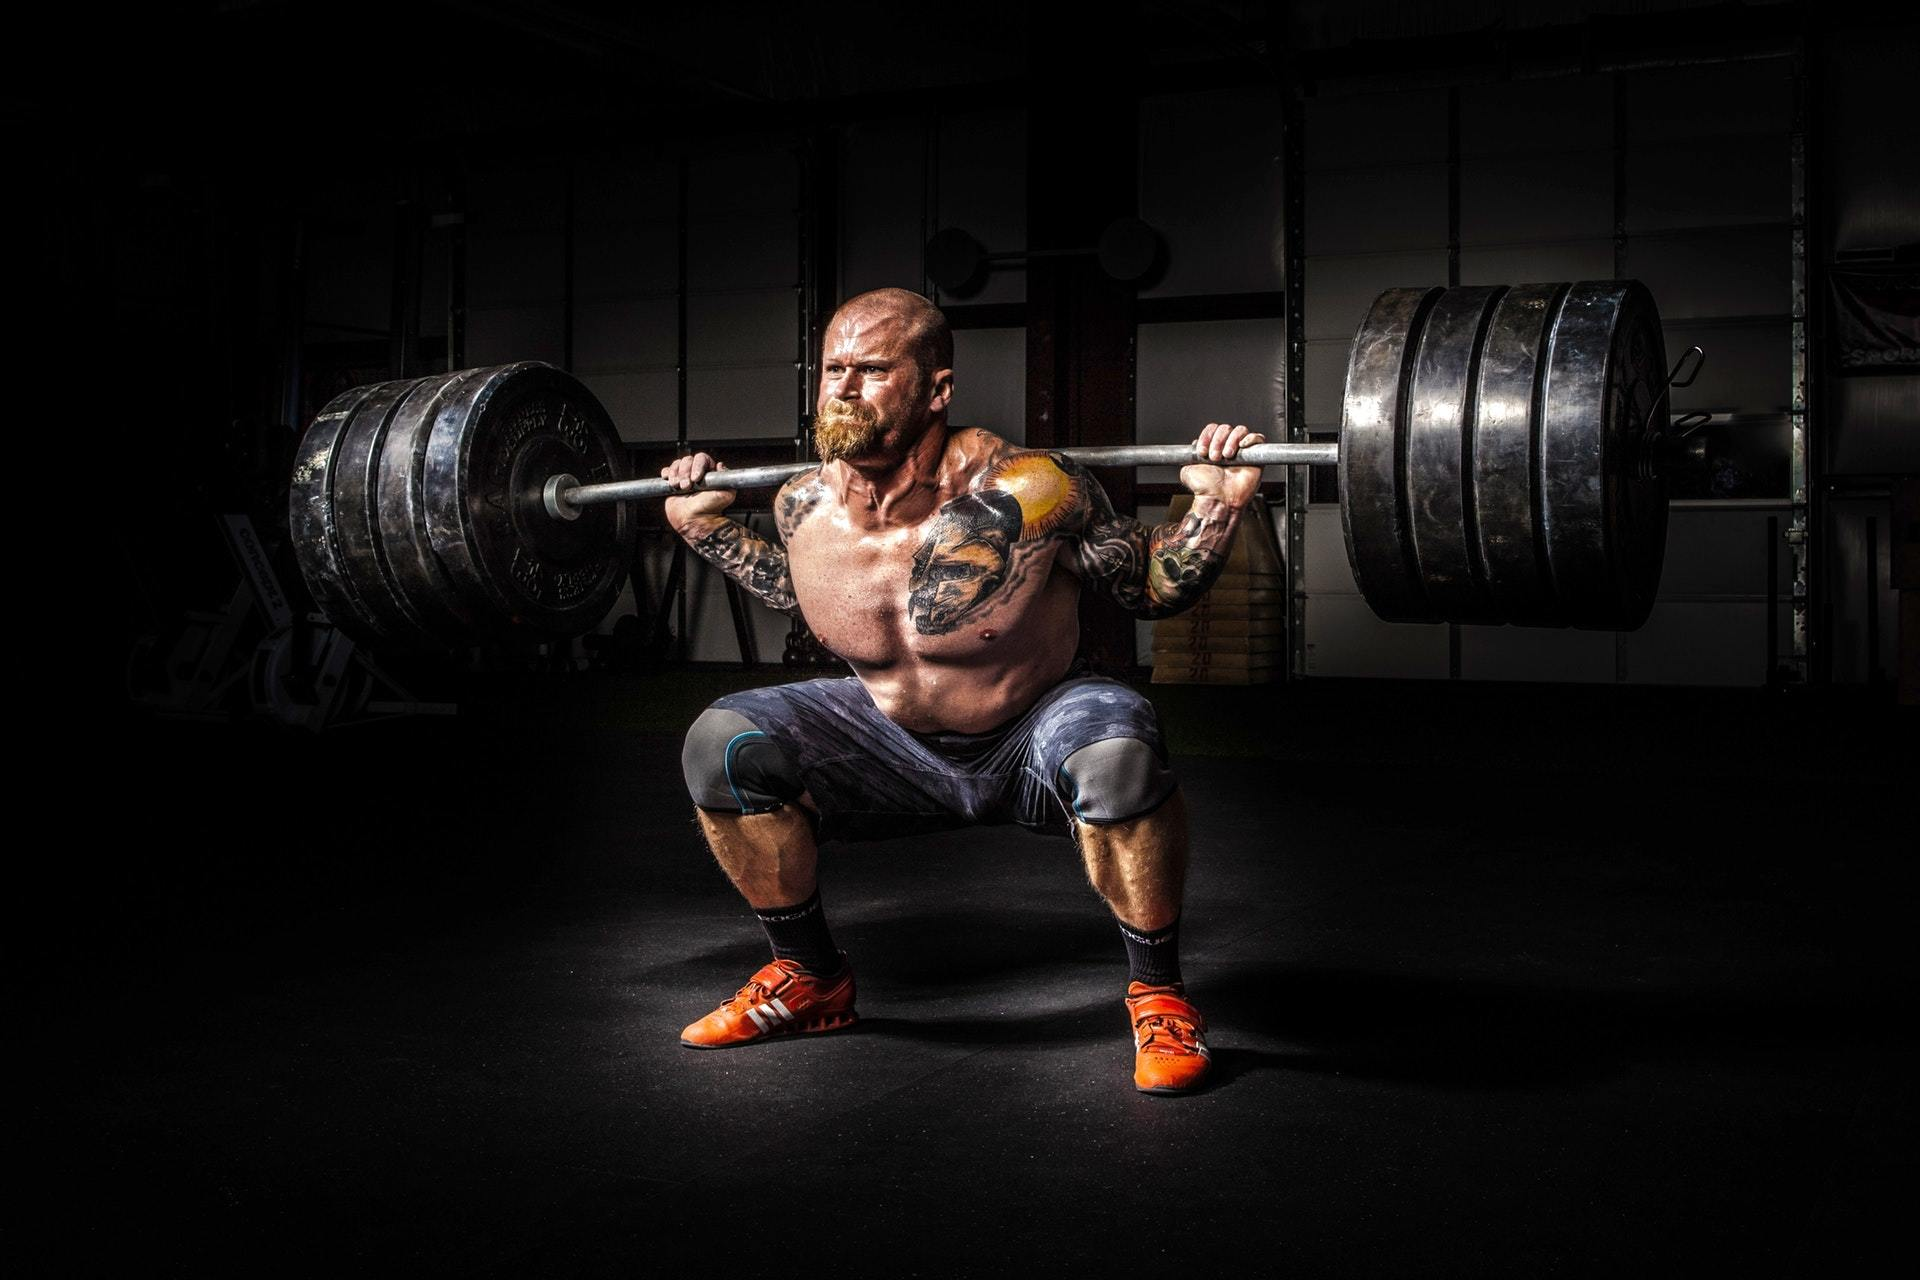 Man doing a squat using a heavy barbell using the best workout shoes for weightlifting